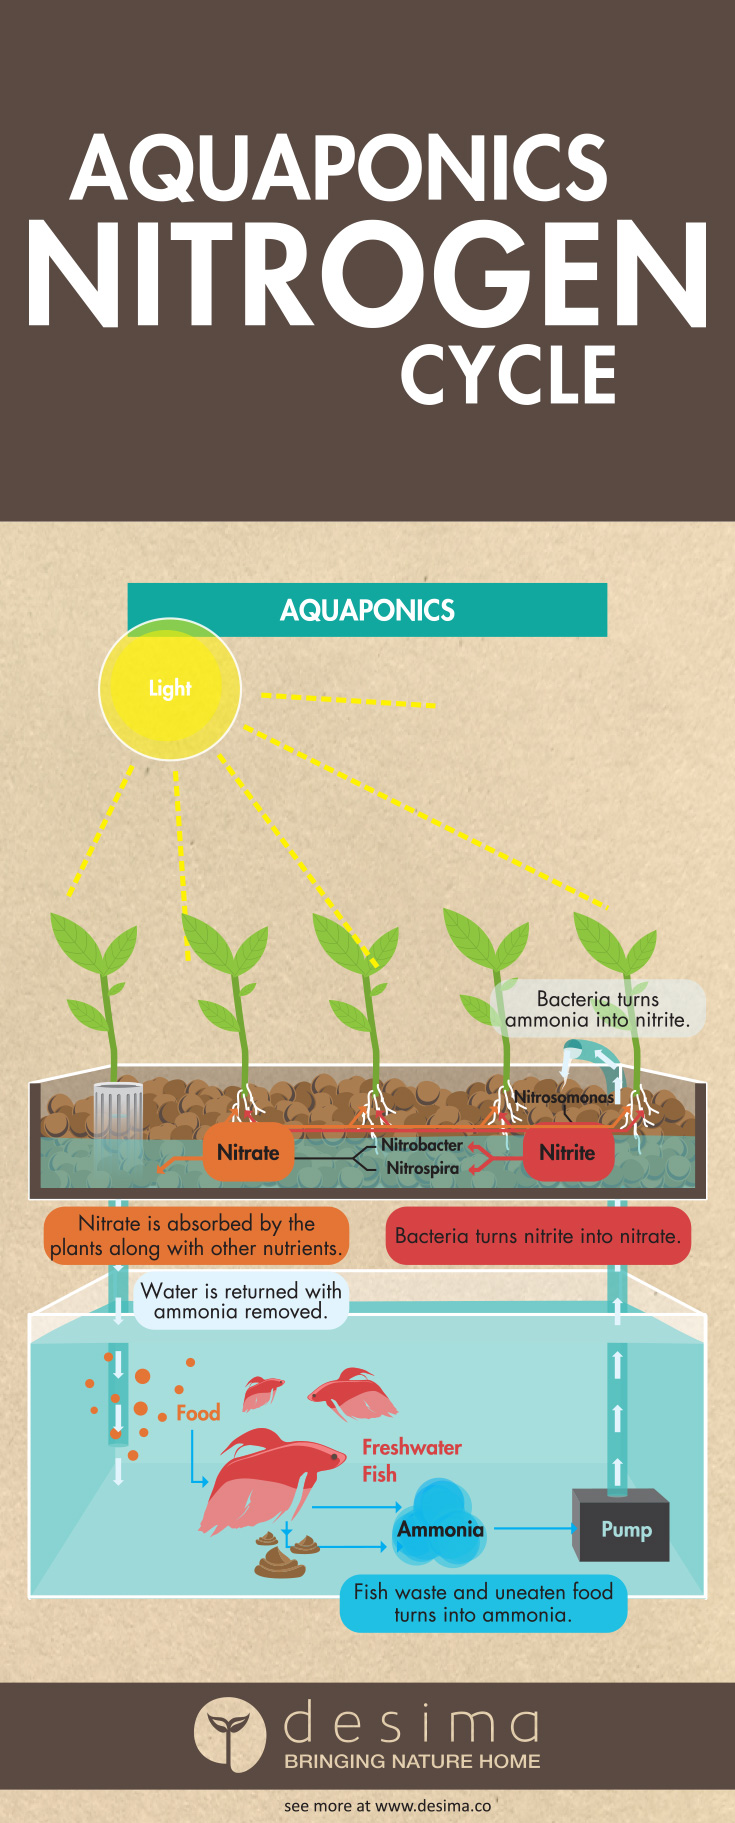 Illustration of the Nitrogen cycle in aquaponics